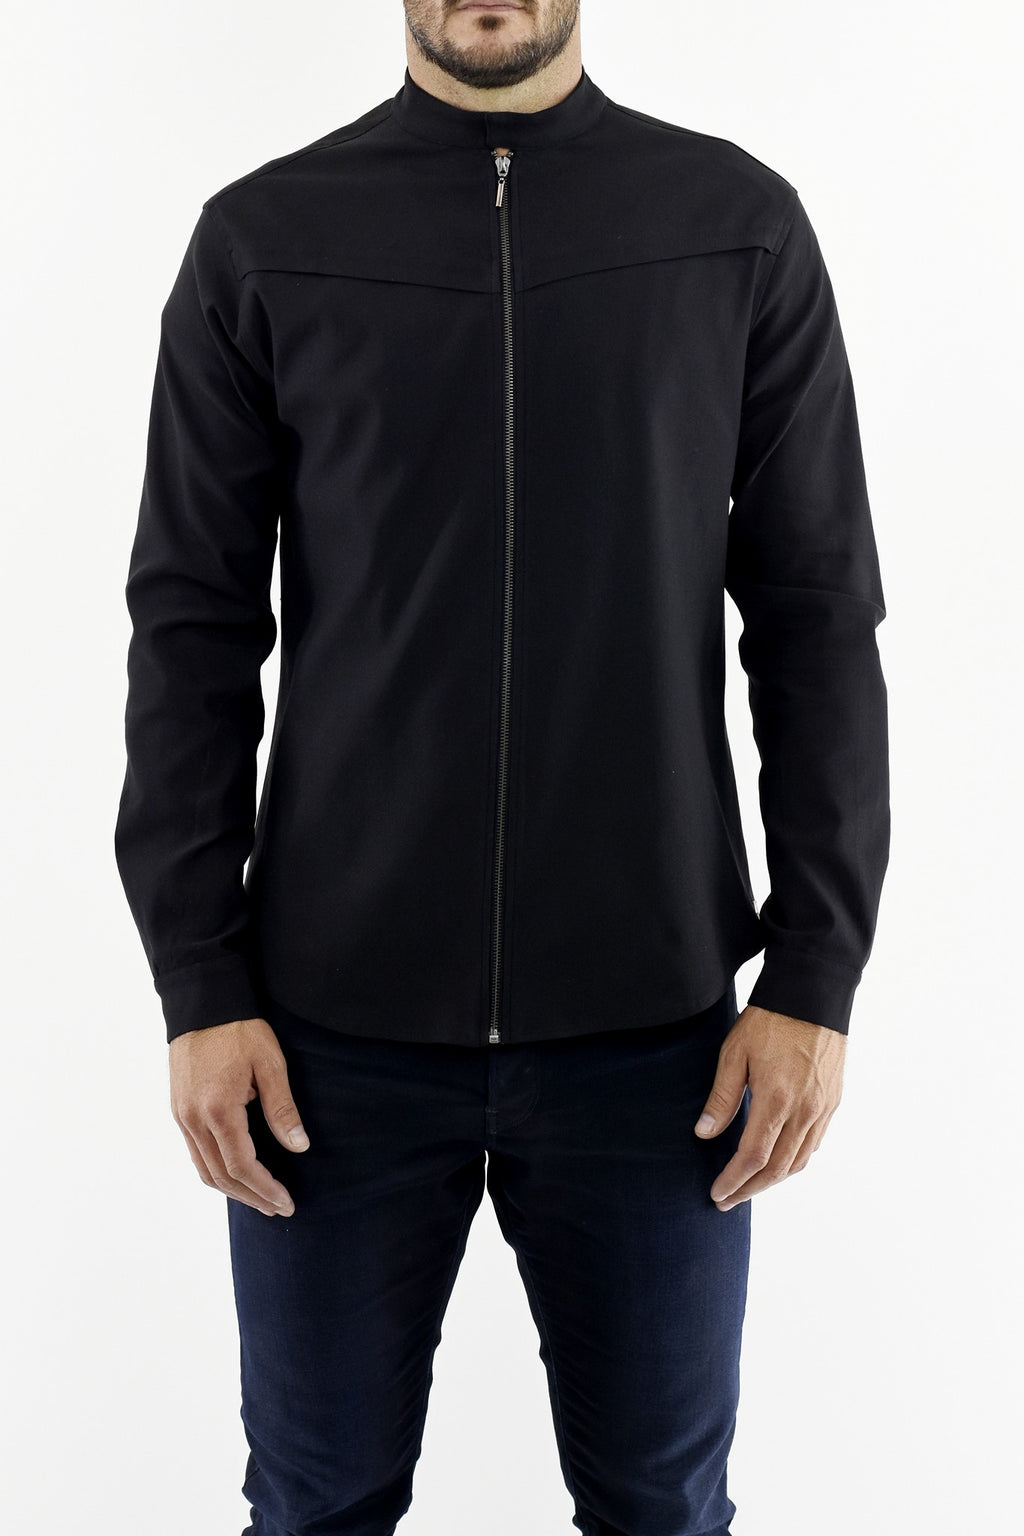 Mens Lightweight Zip Front Jacket ZG5254